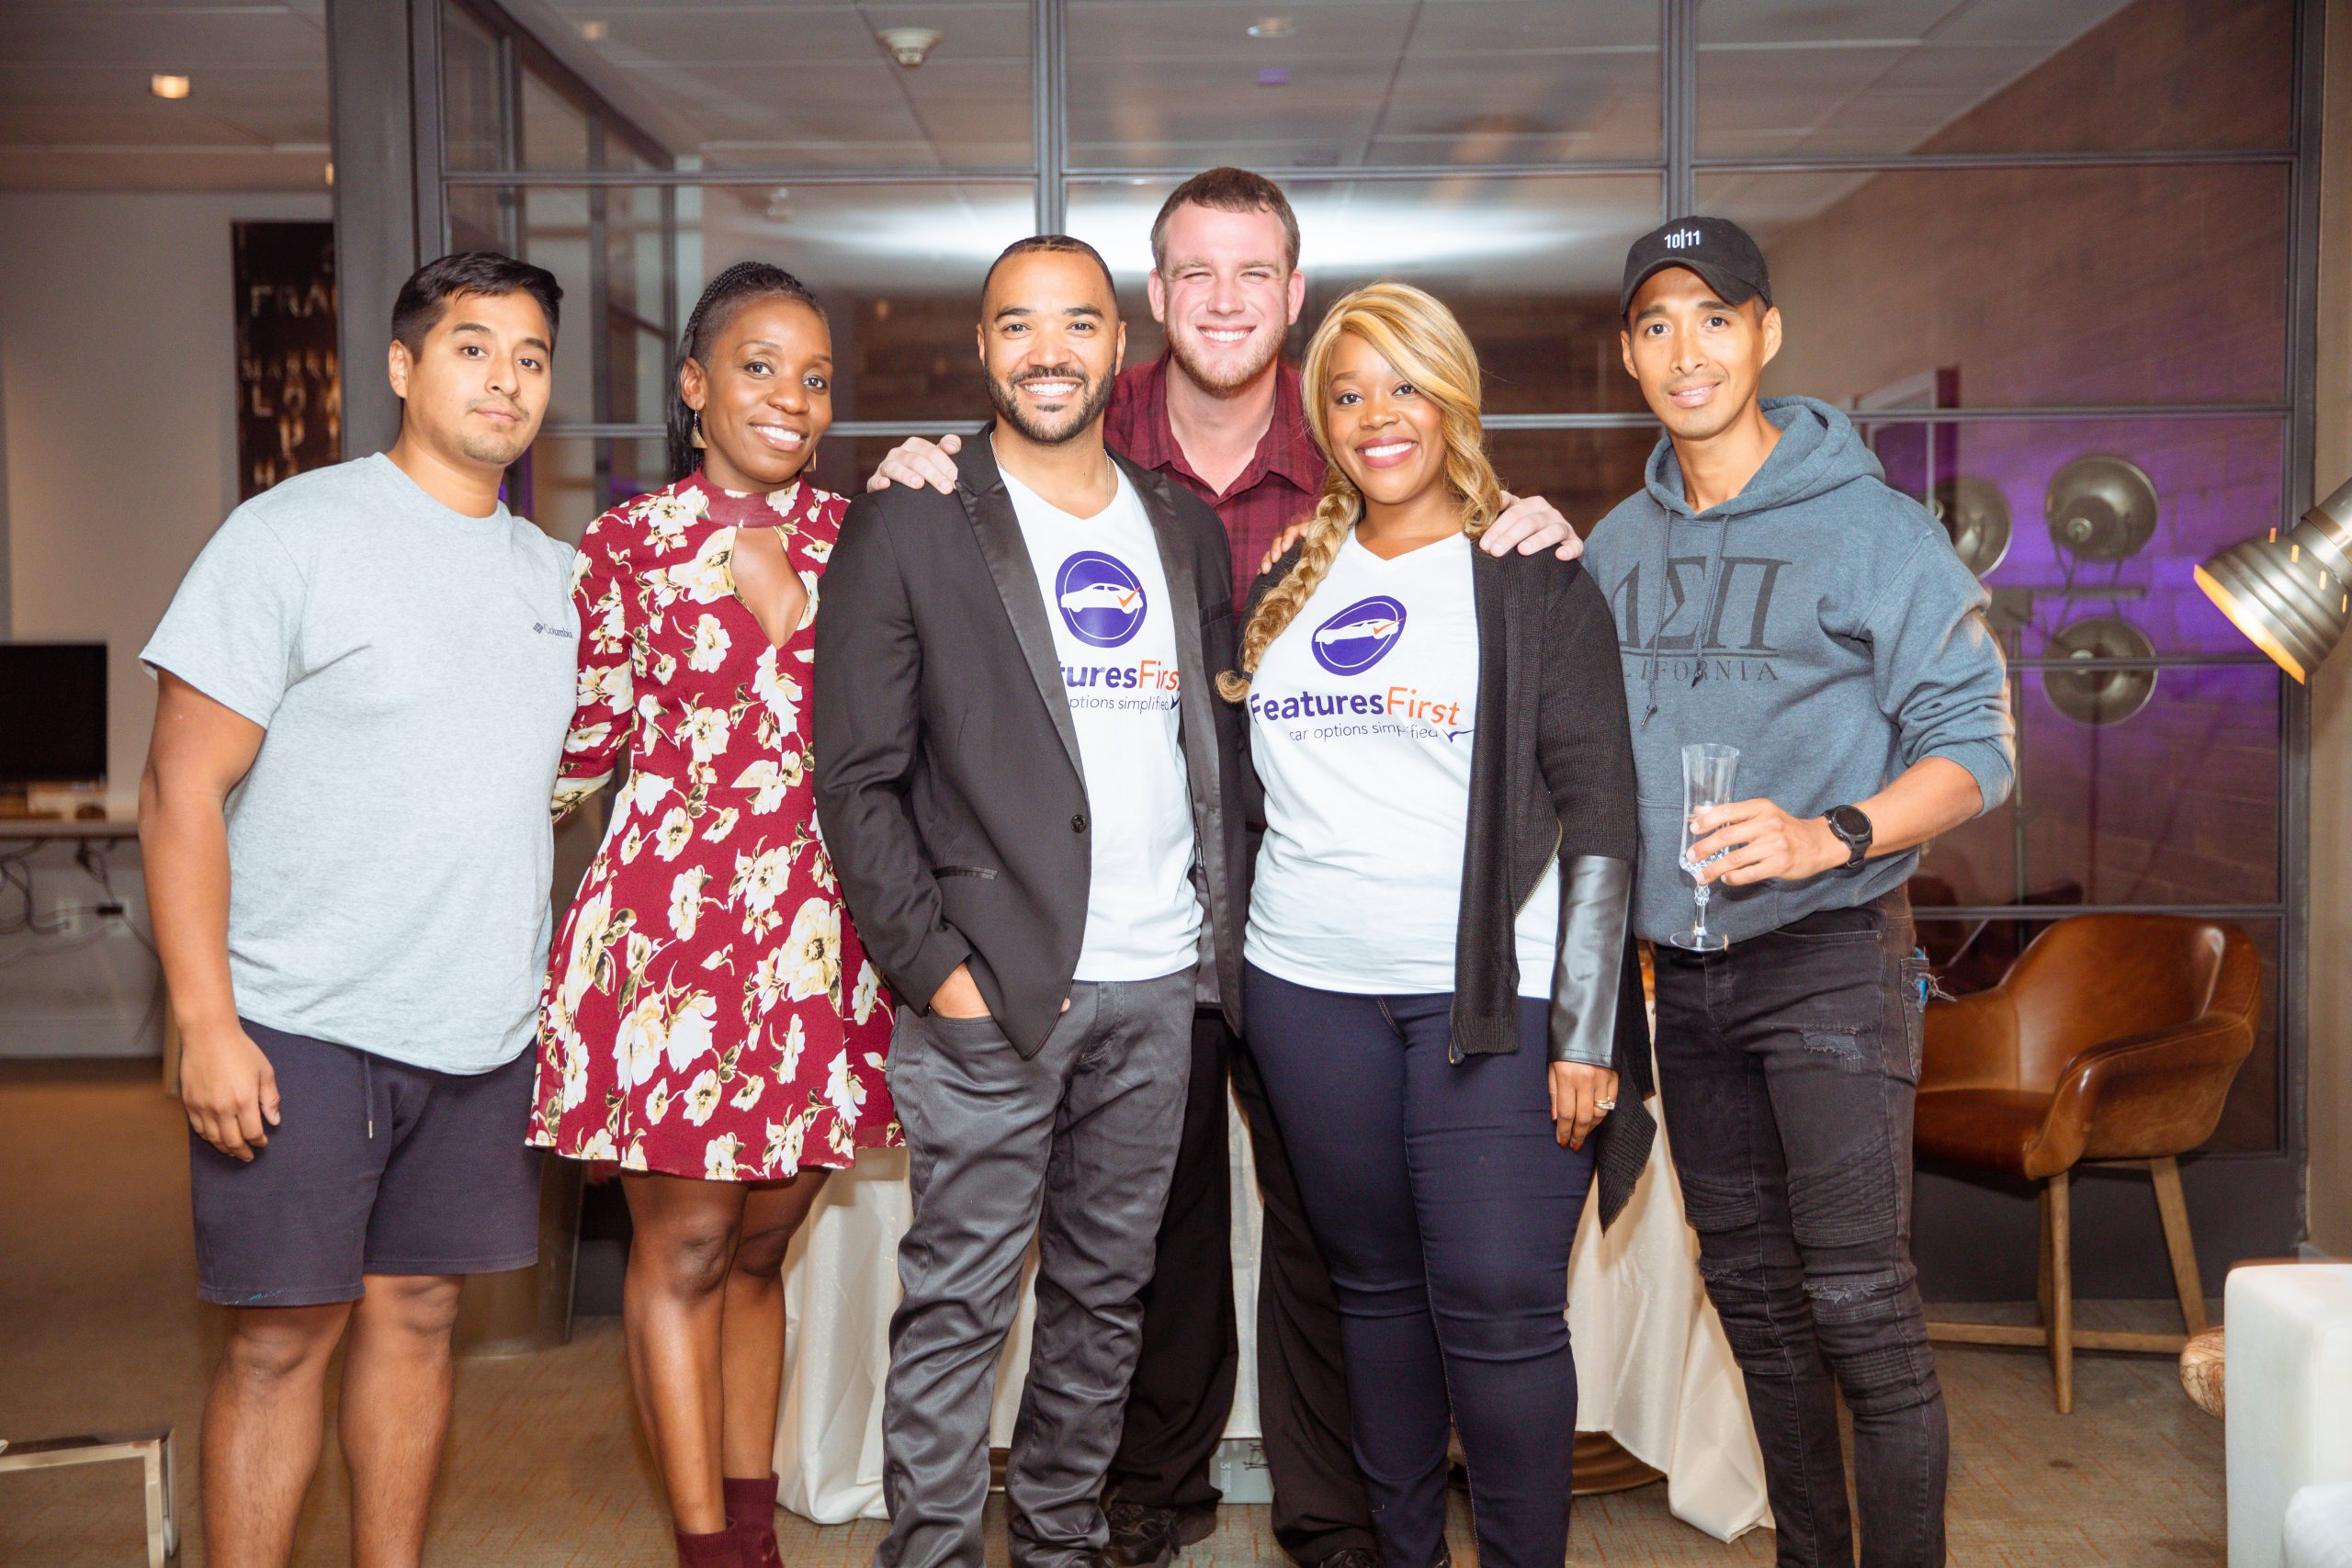 Founder Lisa Bailey and a man wearing FeaturesFirst shirts and stand for a photo with four other people in front of a glass wall